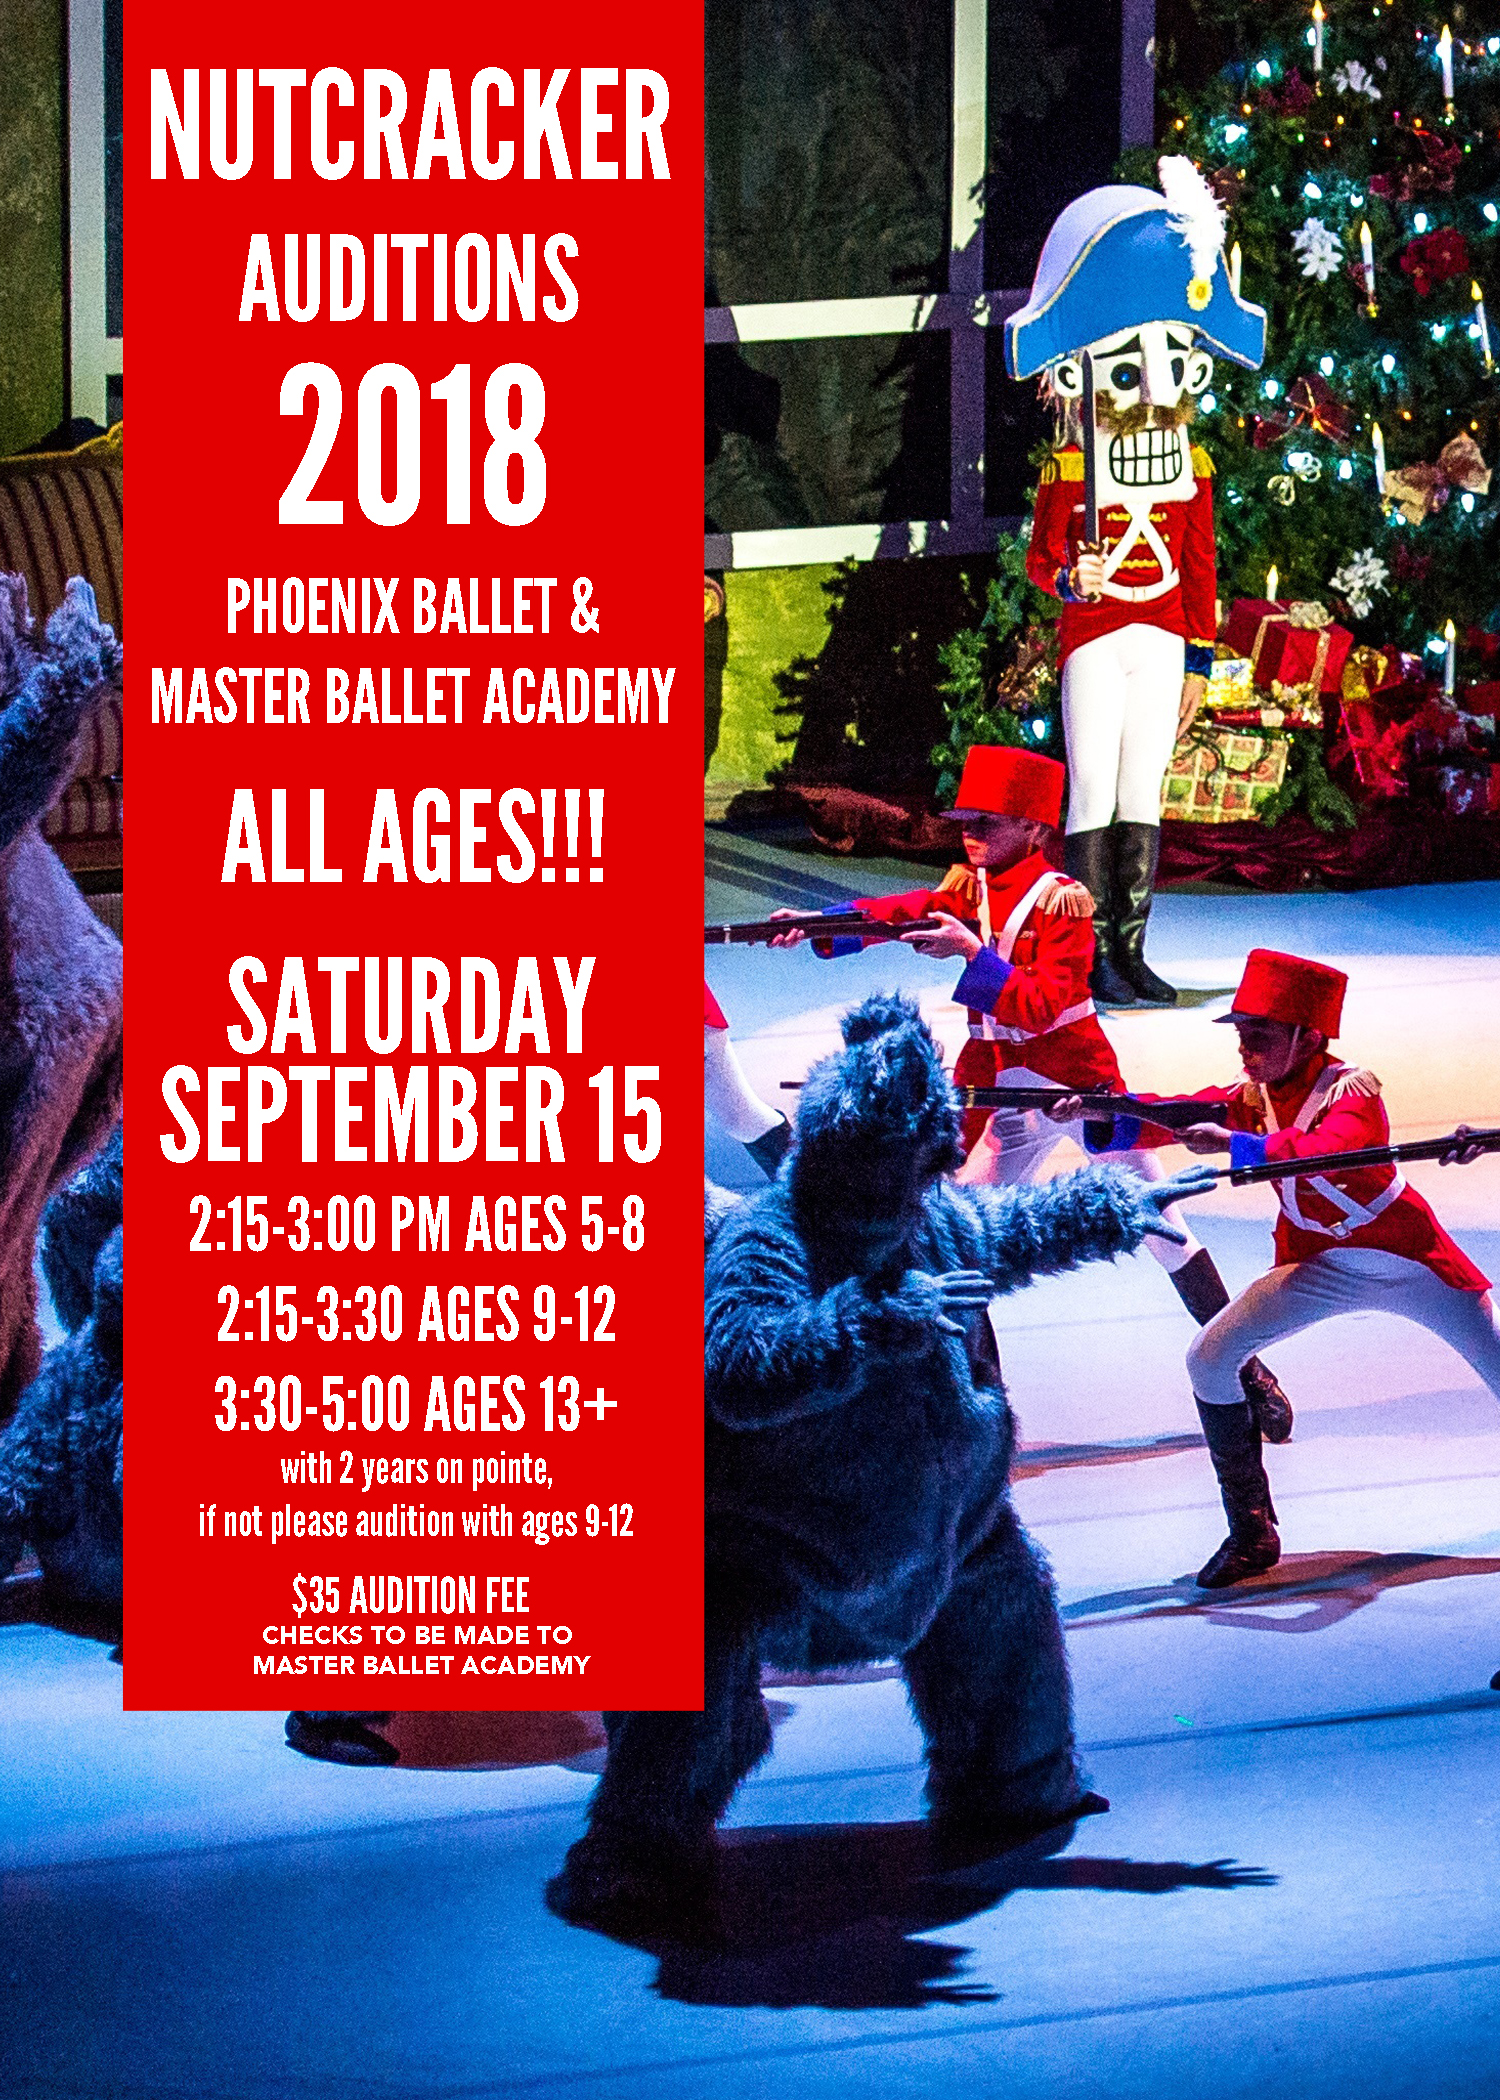 NUTCRACKER CAST PAGE - Everything you need to know about Nutcracker Rehearsals and updated information! Please check on Mondays and Wednesday for updates.